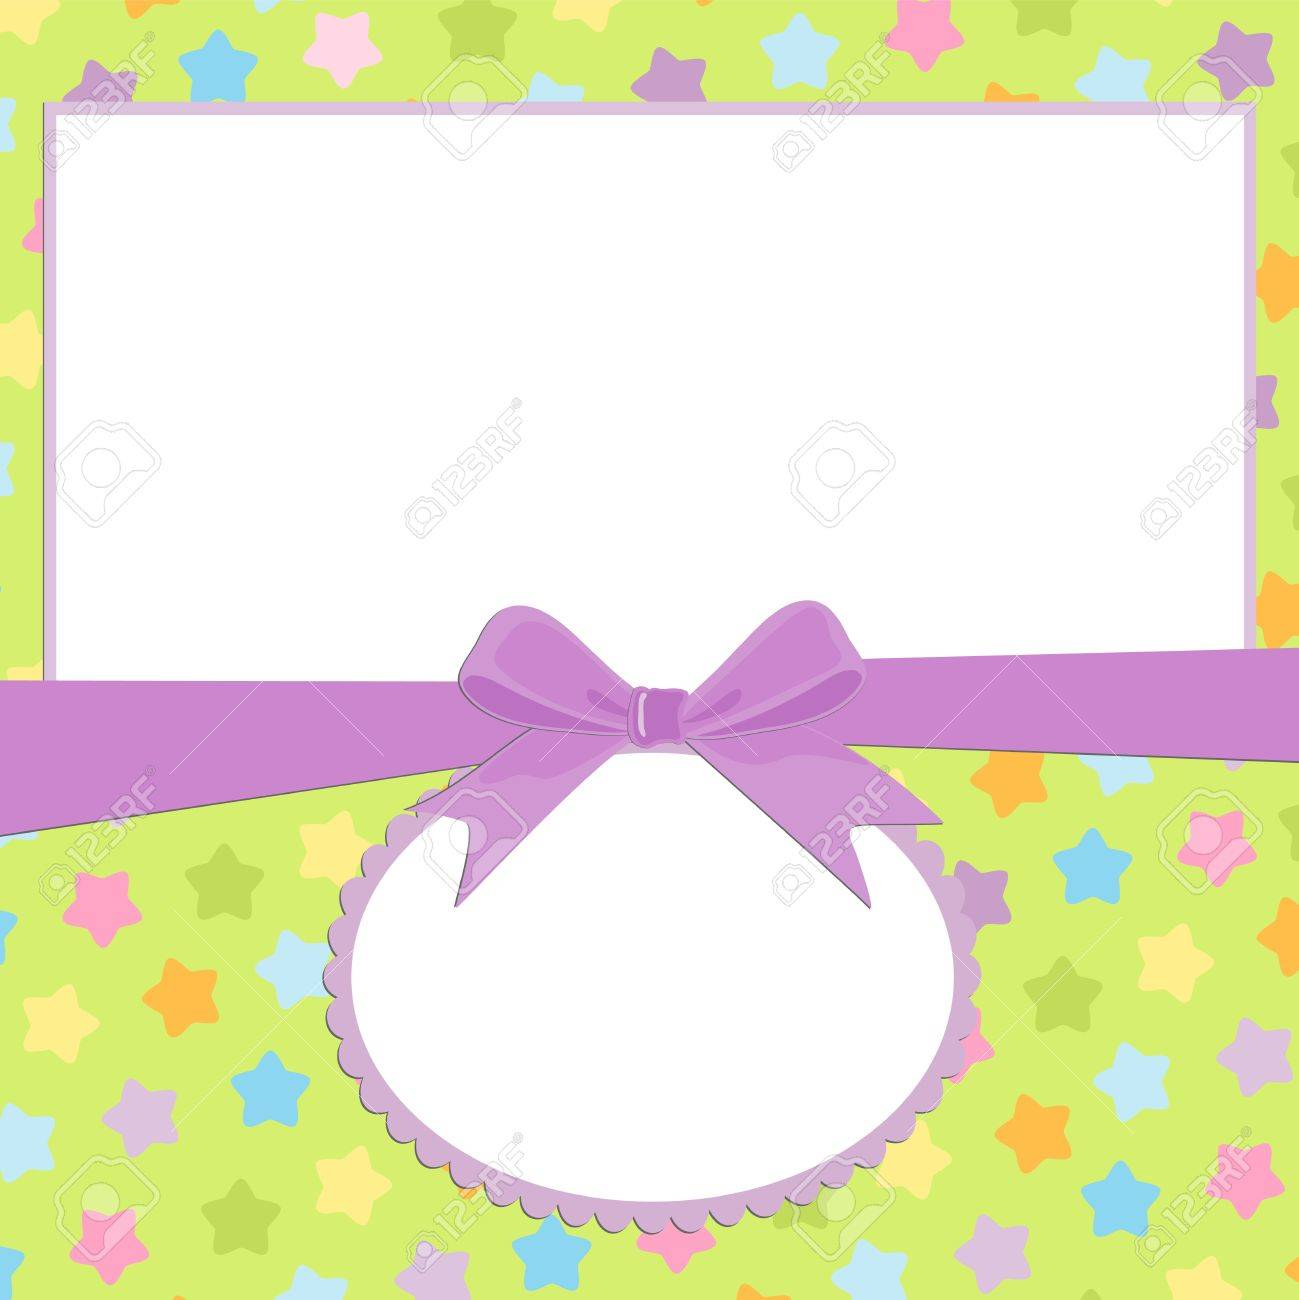 Blank background for greetings card, postcard or photo frame Stock Vector - 8180921